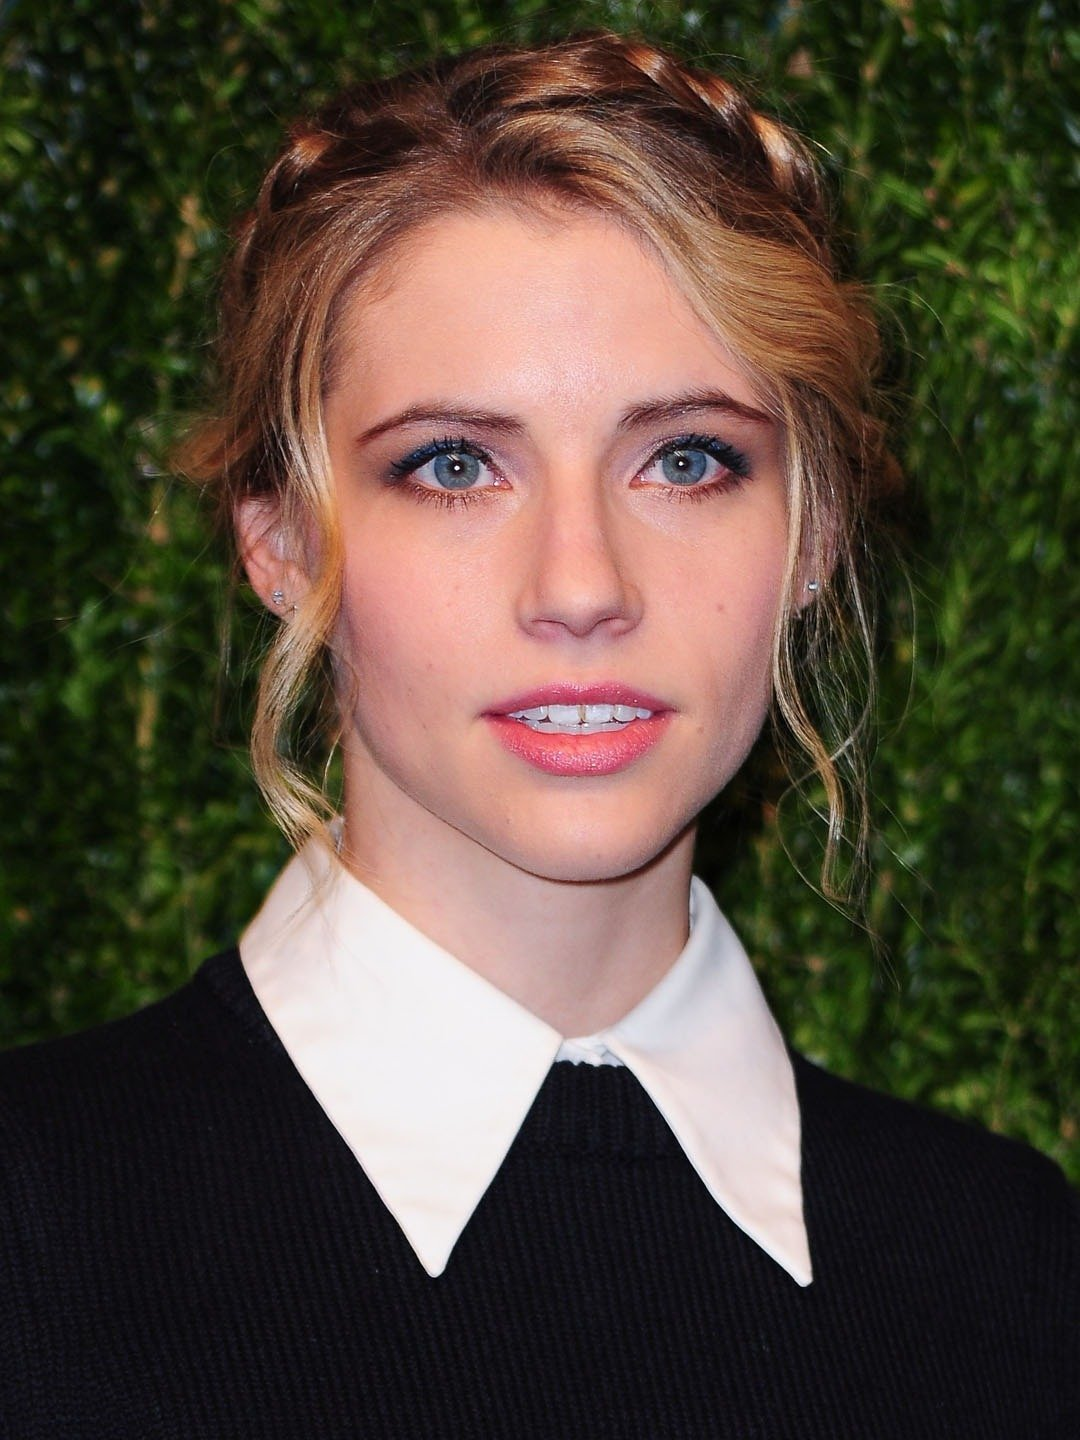 Wallis Currie-Wood